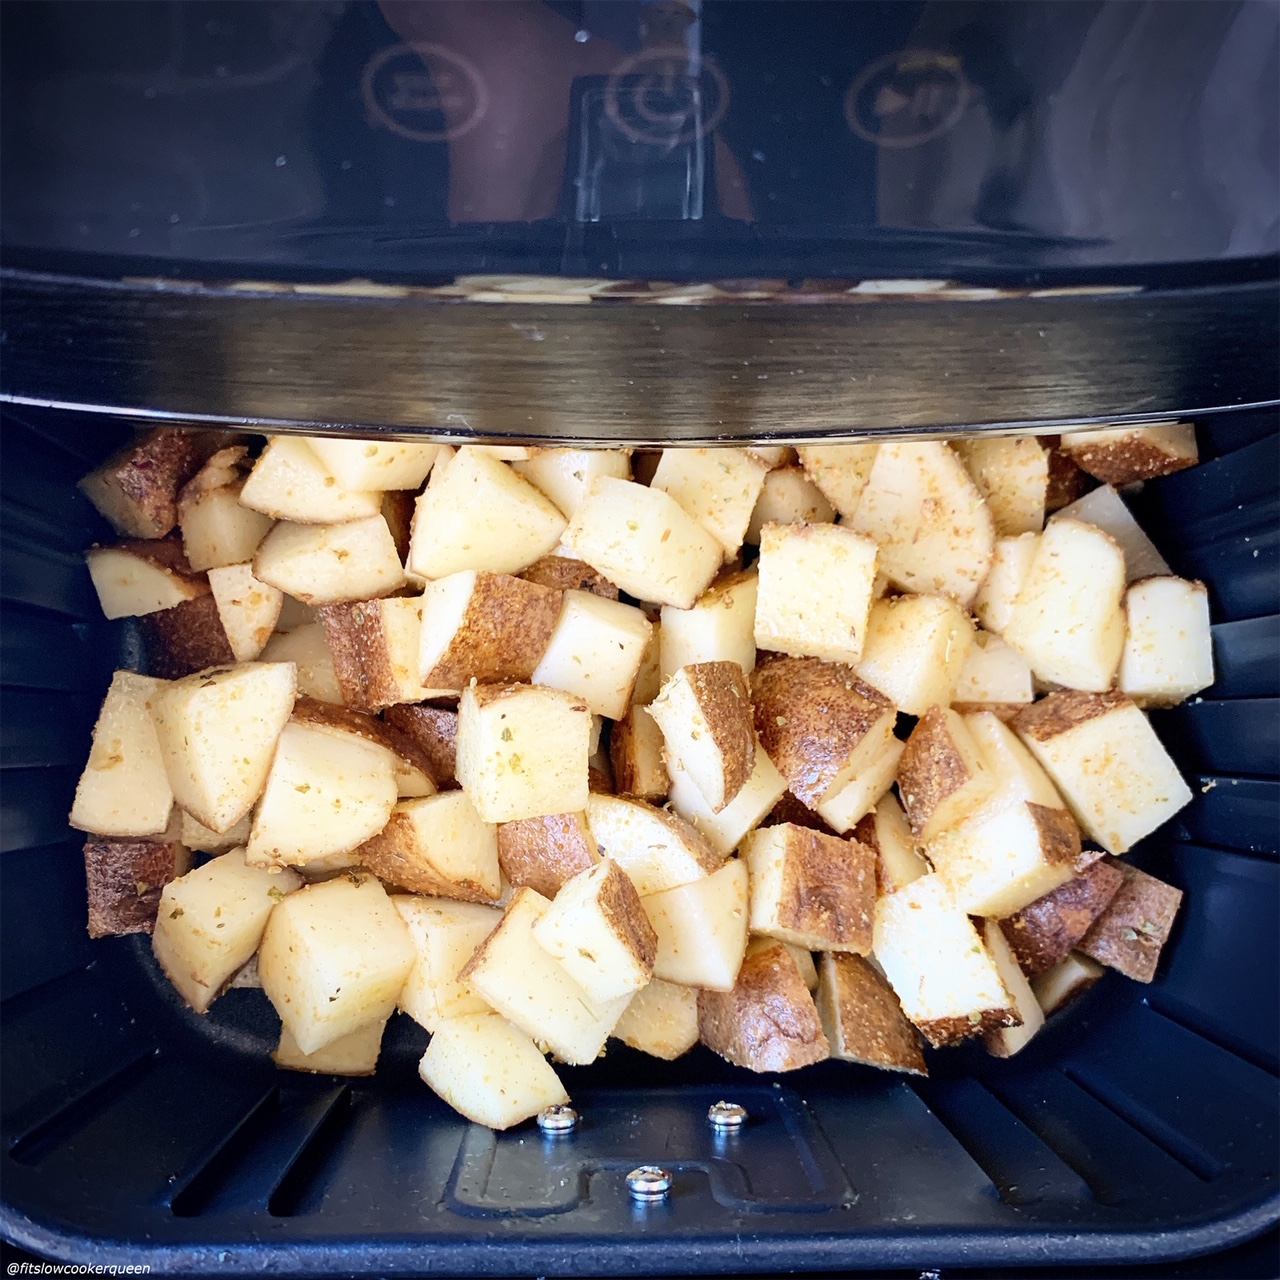 raw diced potatoes in the air fryer before cooking